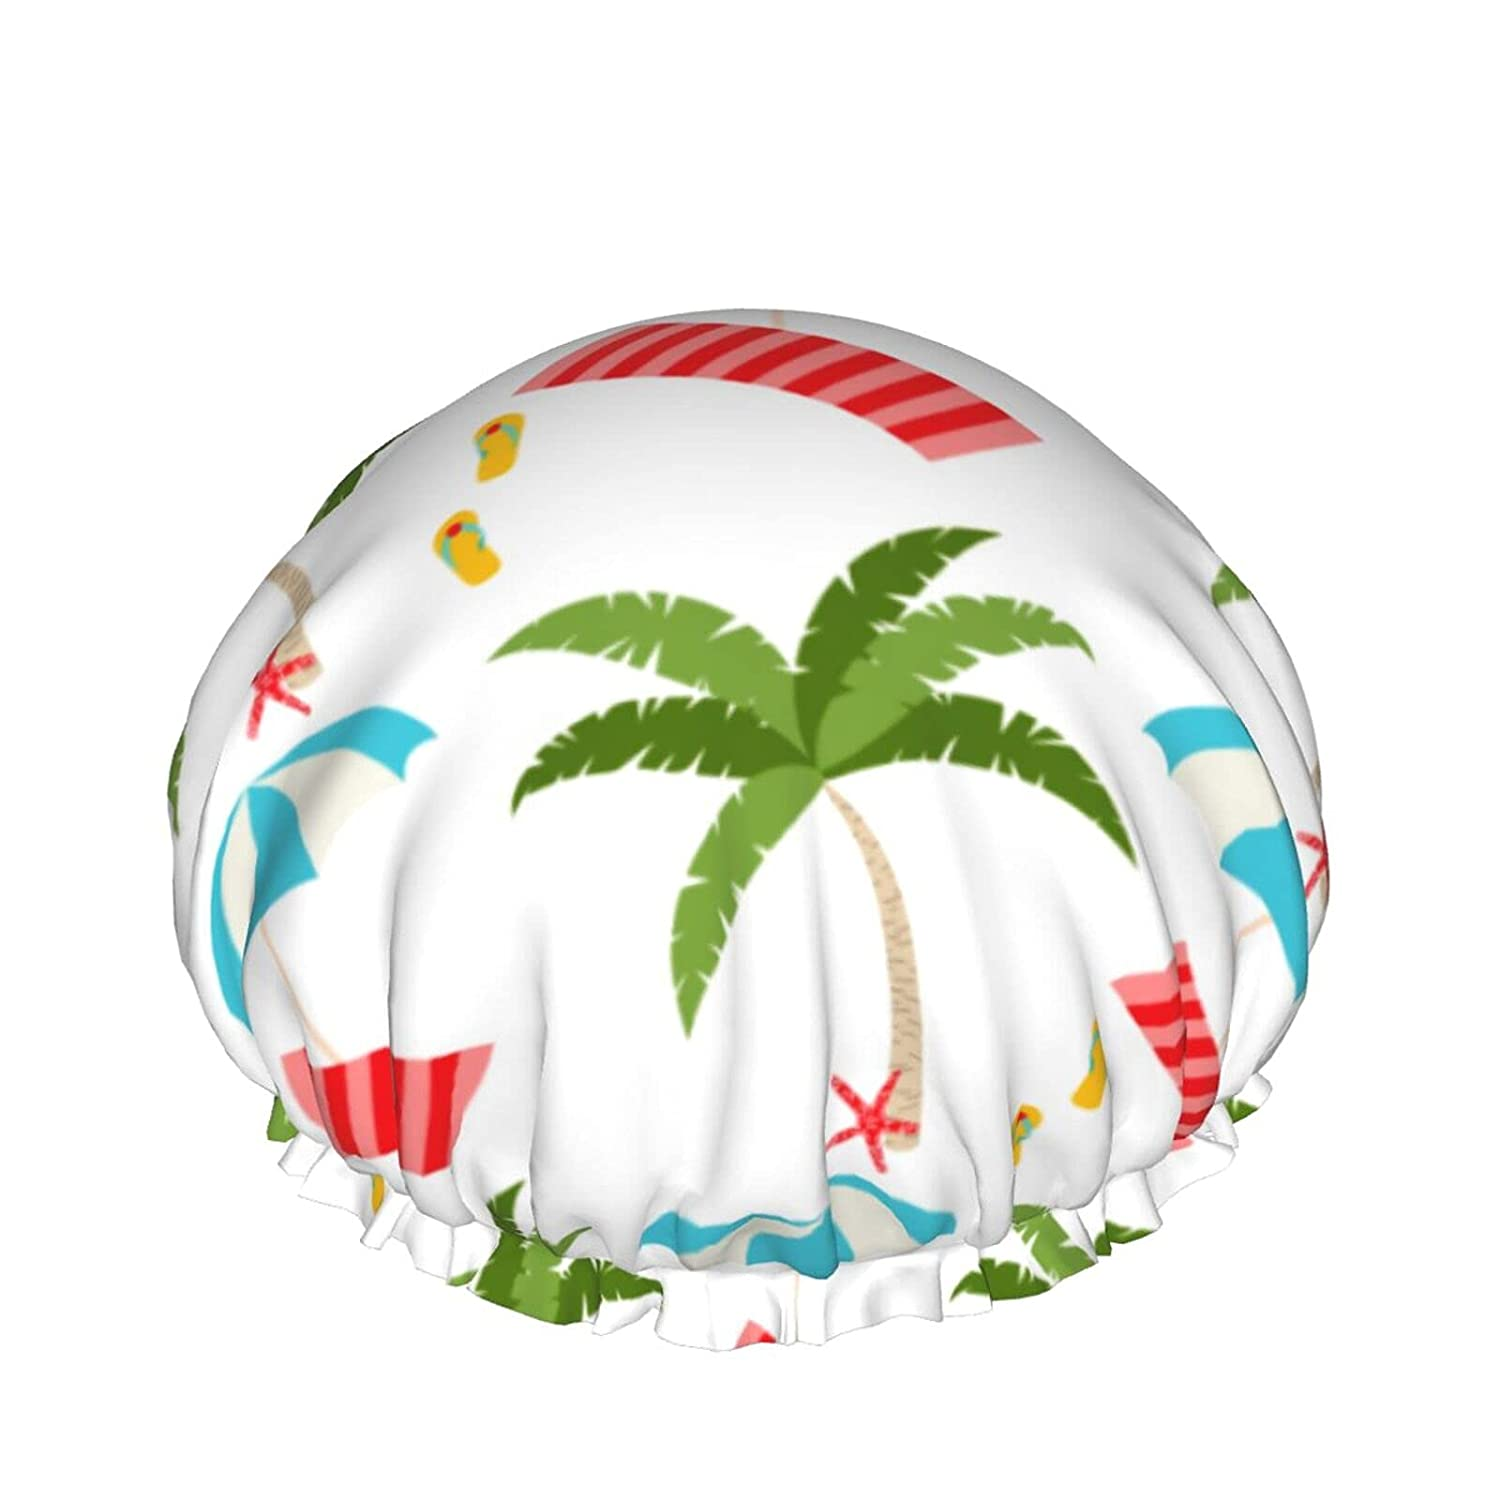 Double Layers Direct store Sale SALE% OFF Shower Cap Summer Beach And Sun towel Umbrella Hol